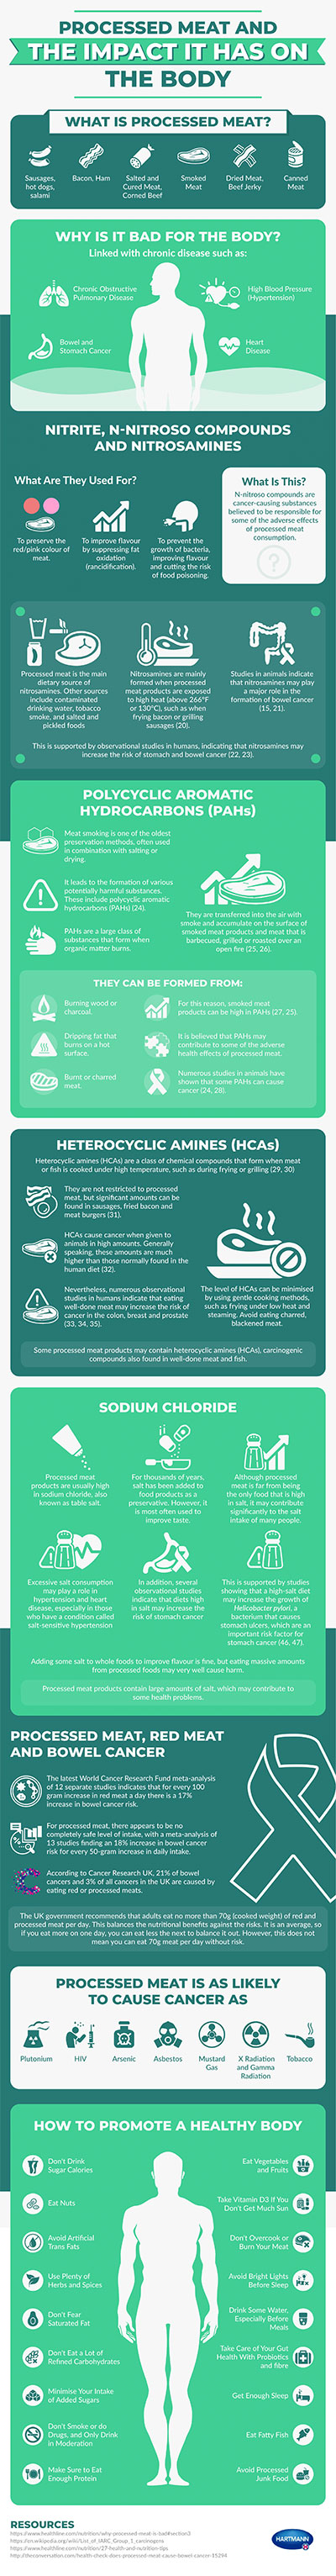 processed meat infographic